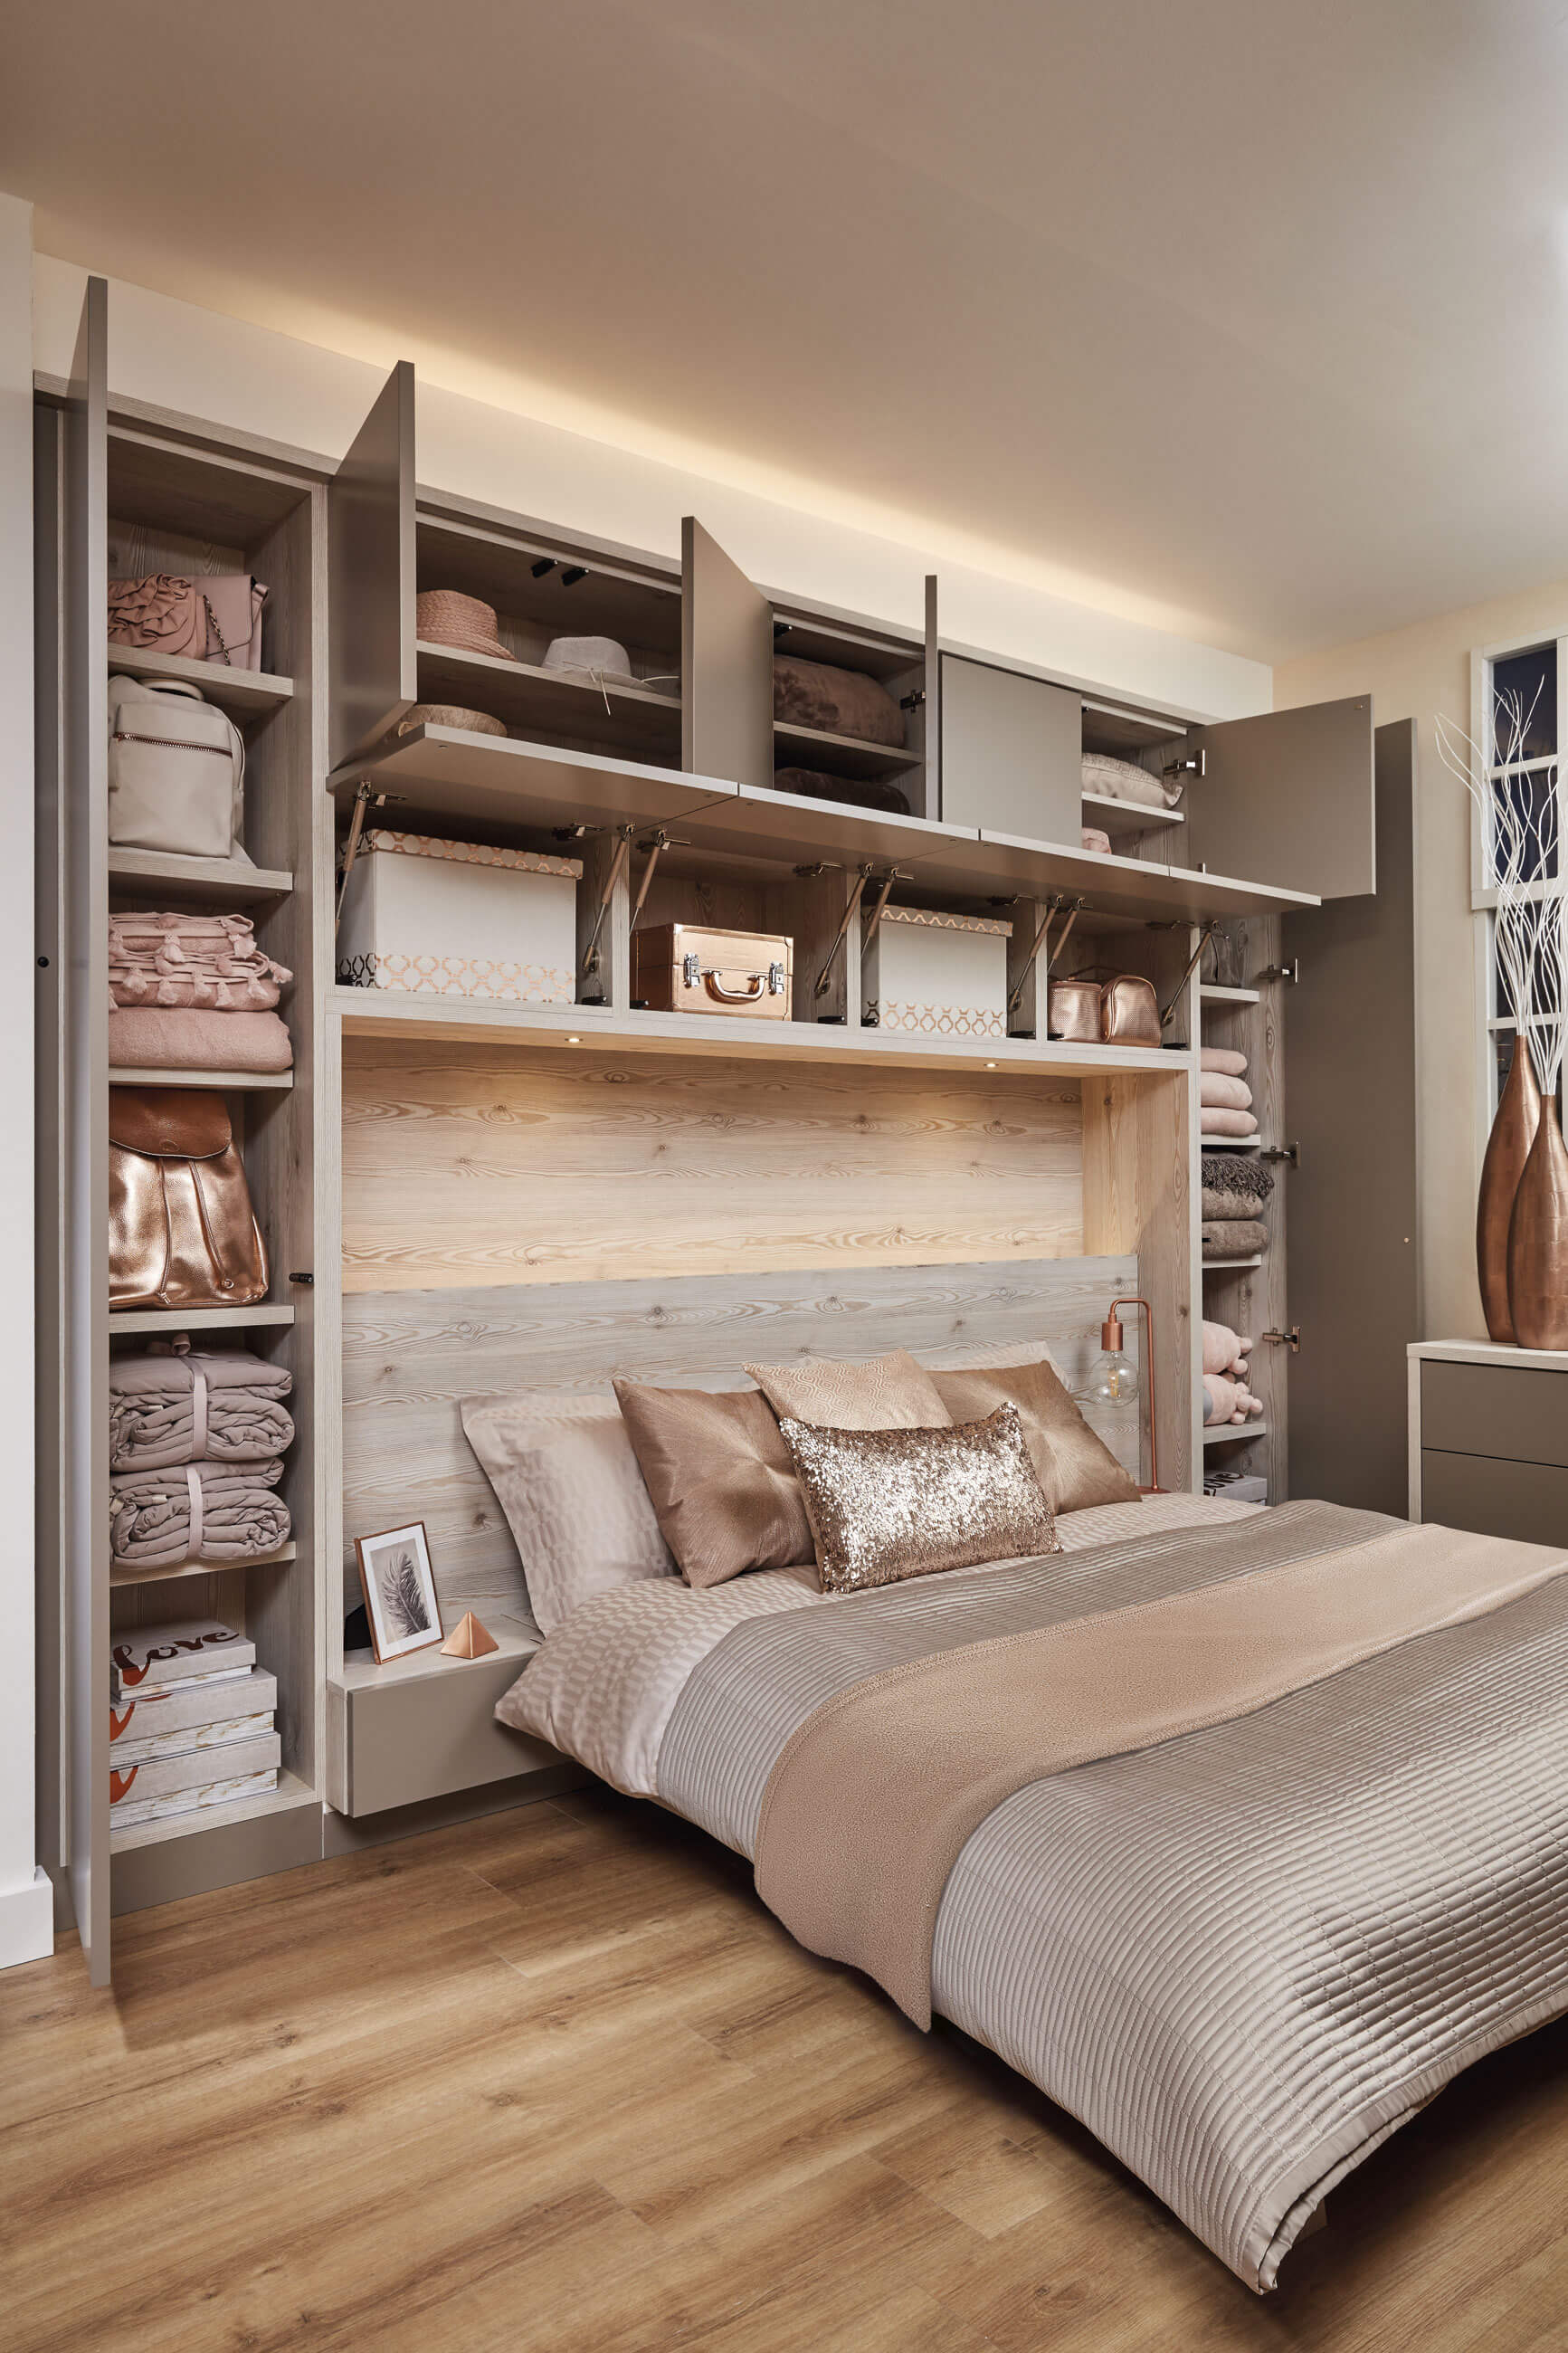 Stair Box In Bedroom: Contemporary Willow Bedroom